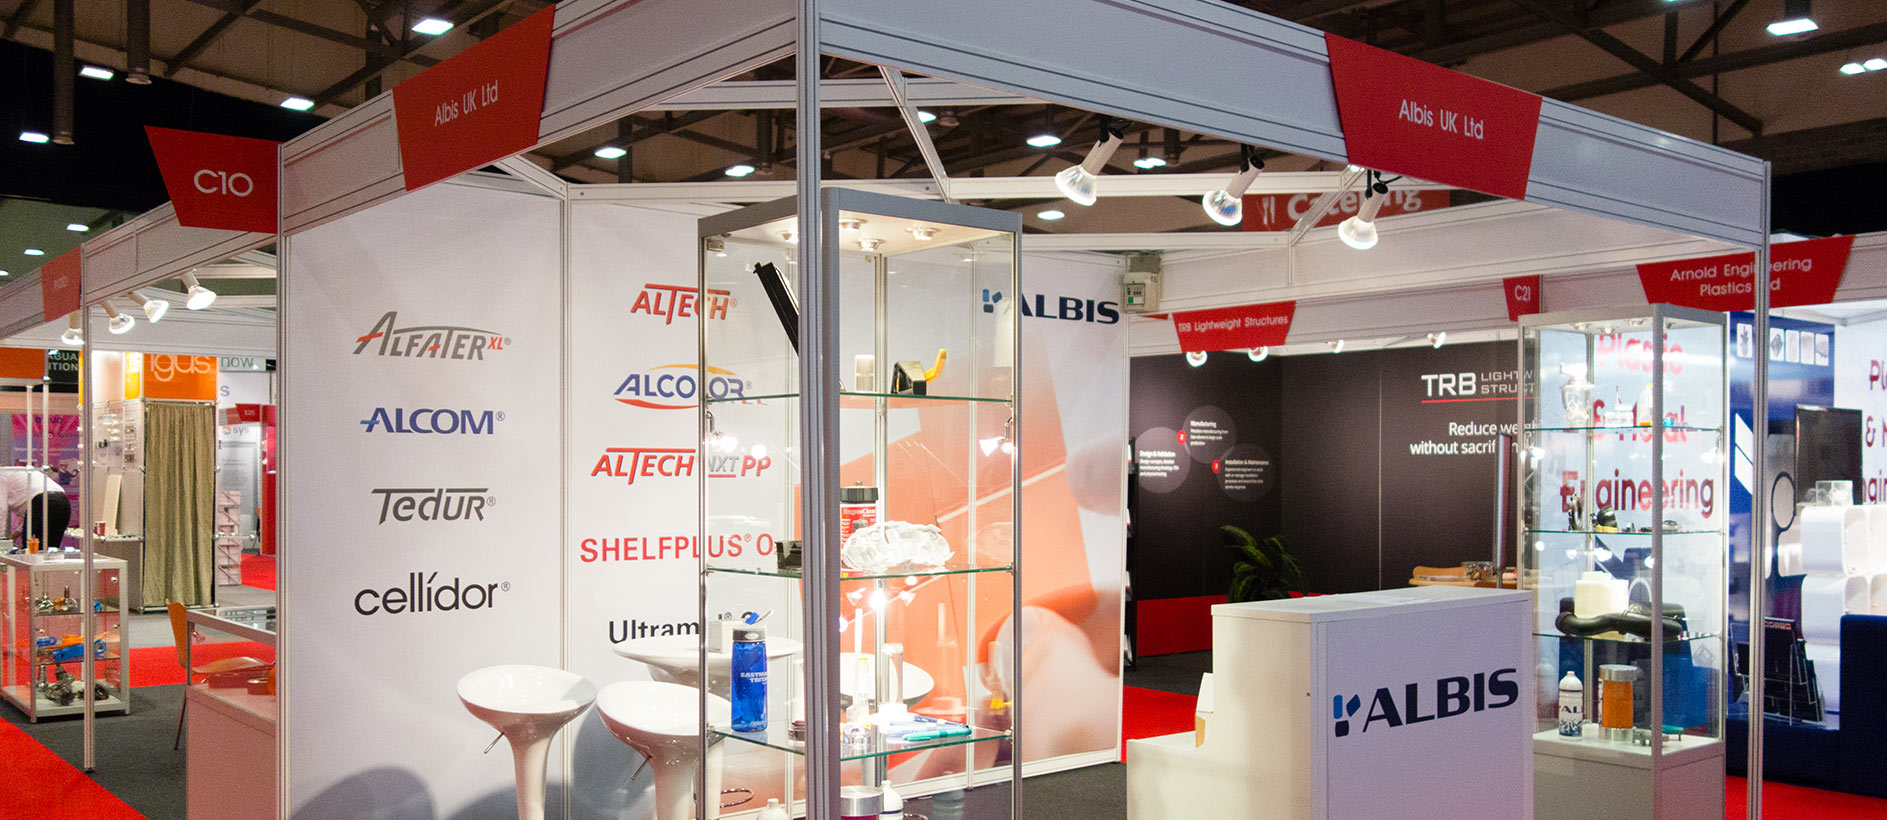 Albis UK shell scheme display at a trade show